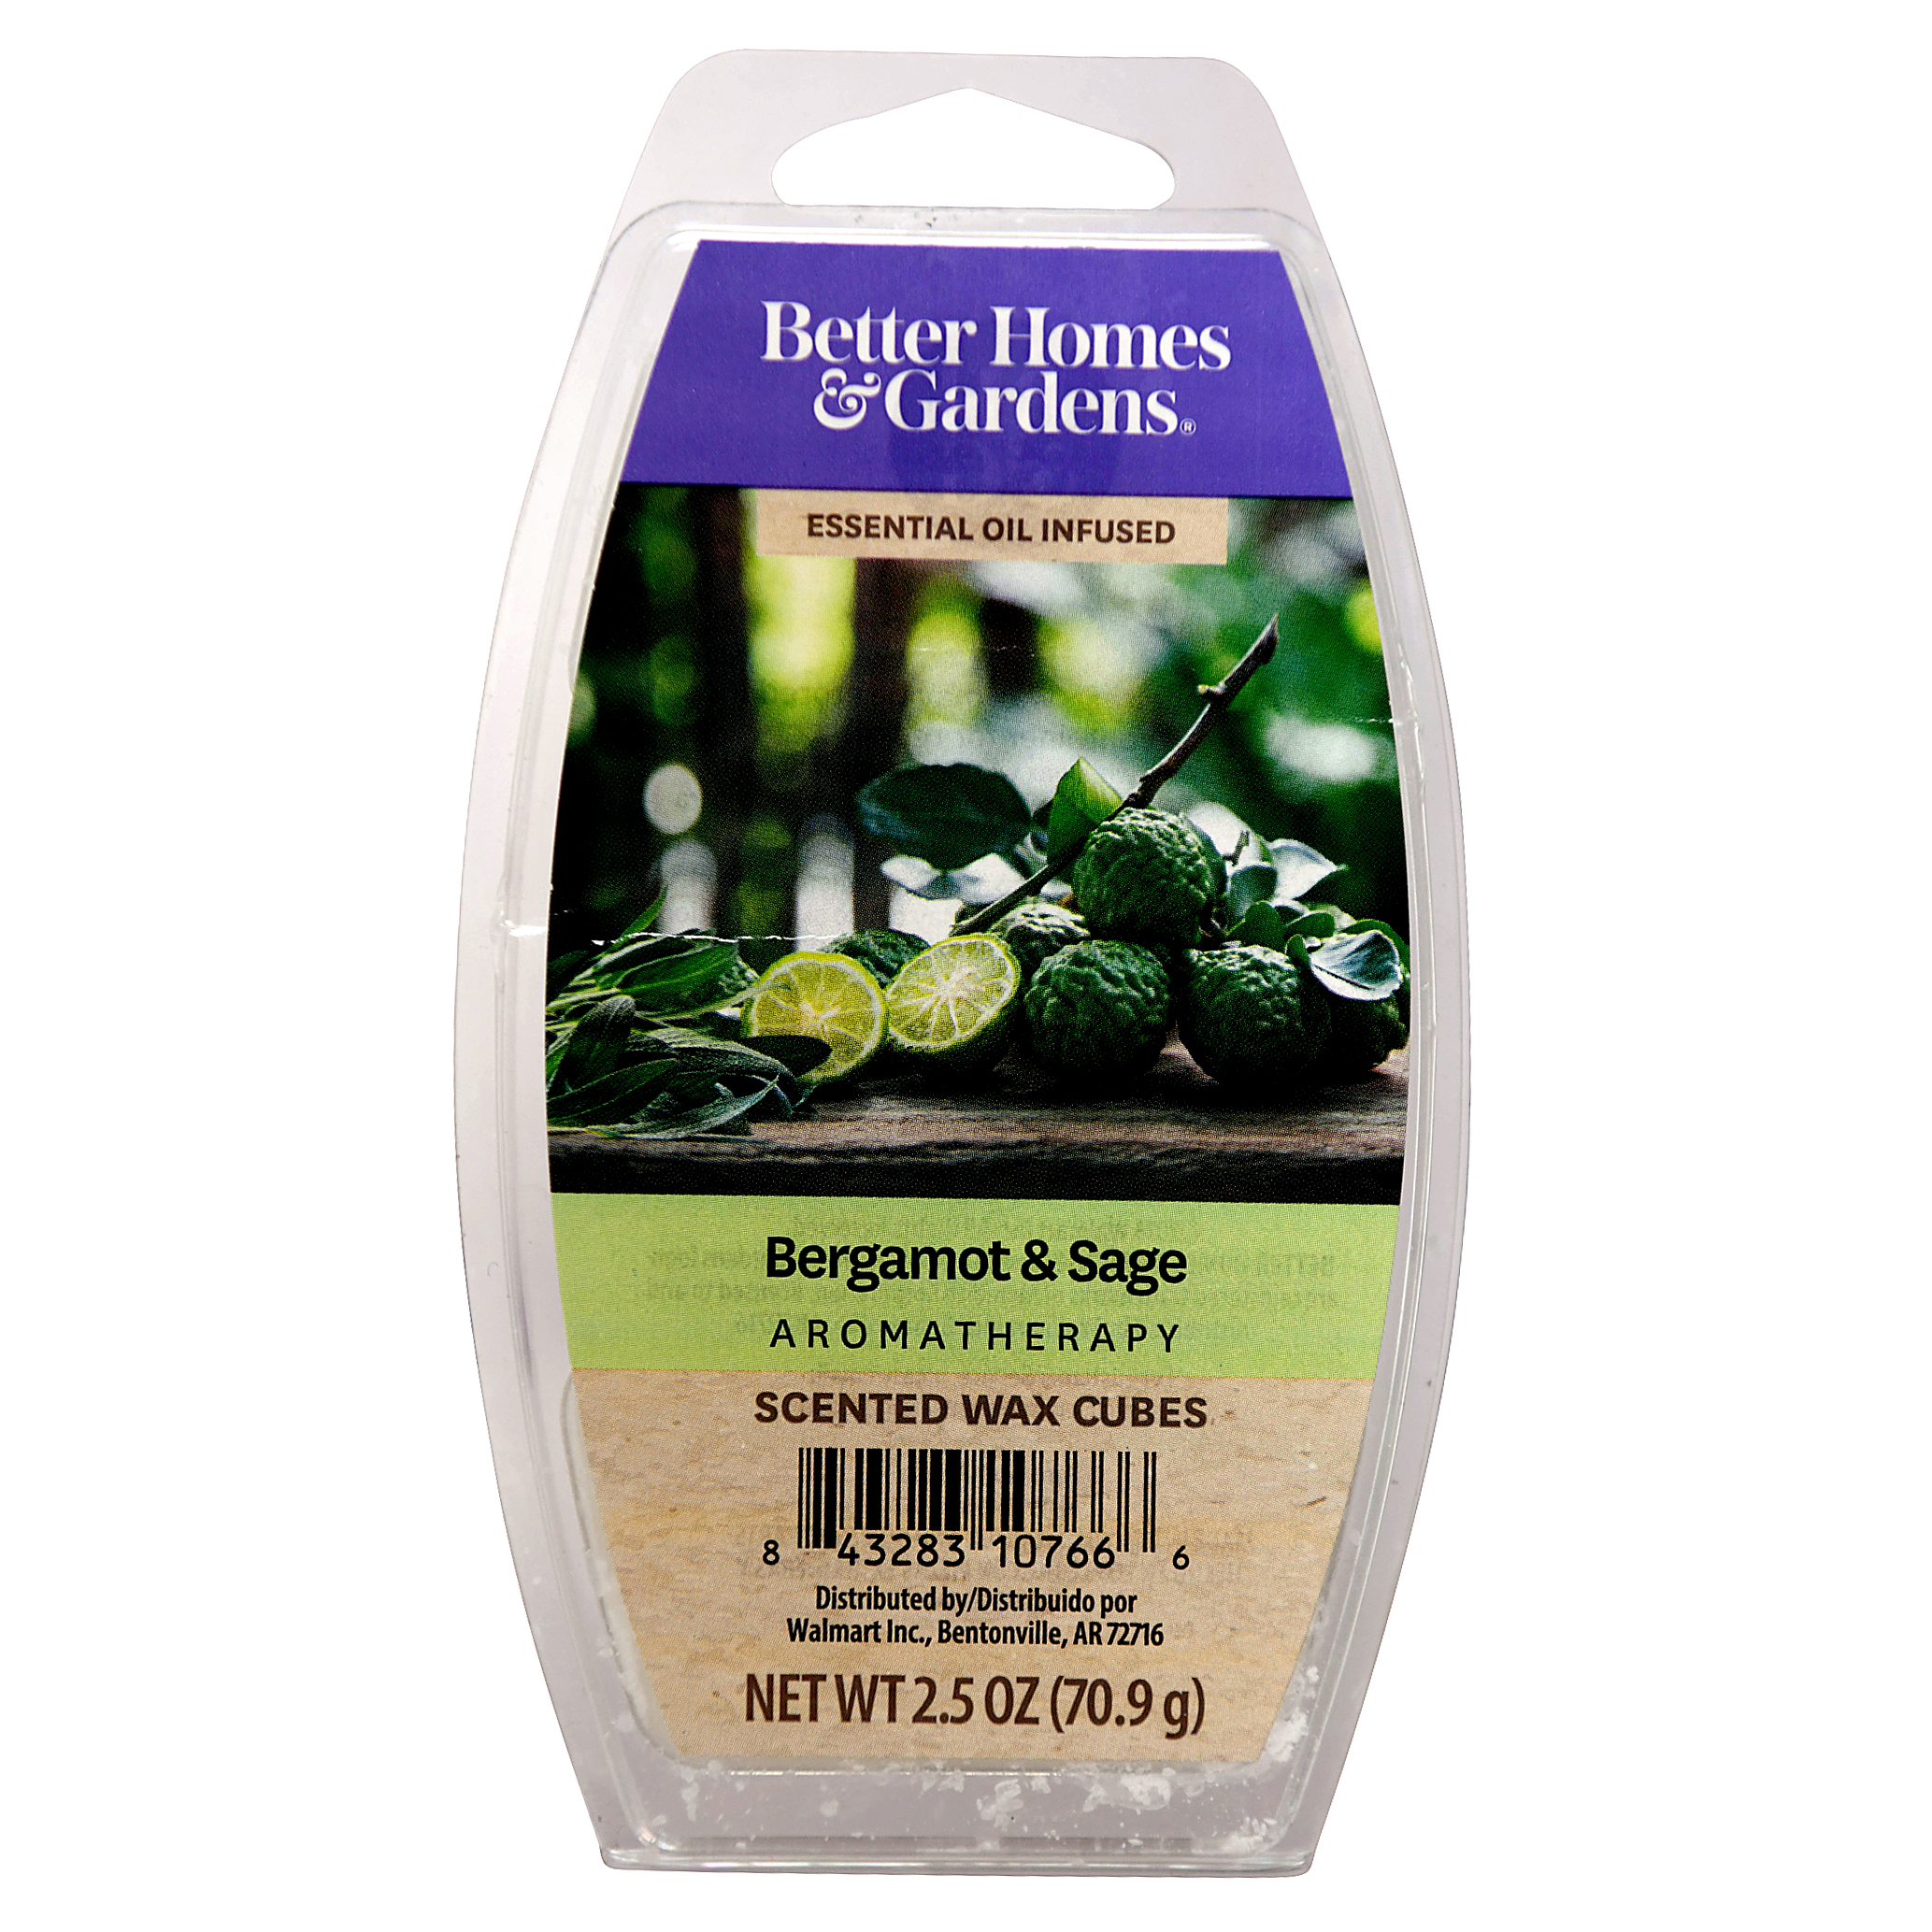 Better Homes and Gardens Scented Wax Cubes, Bergamot and Sage